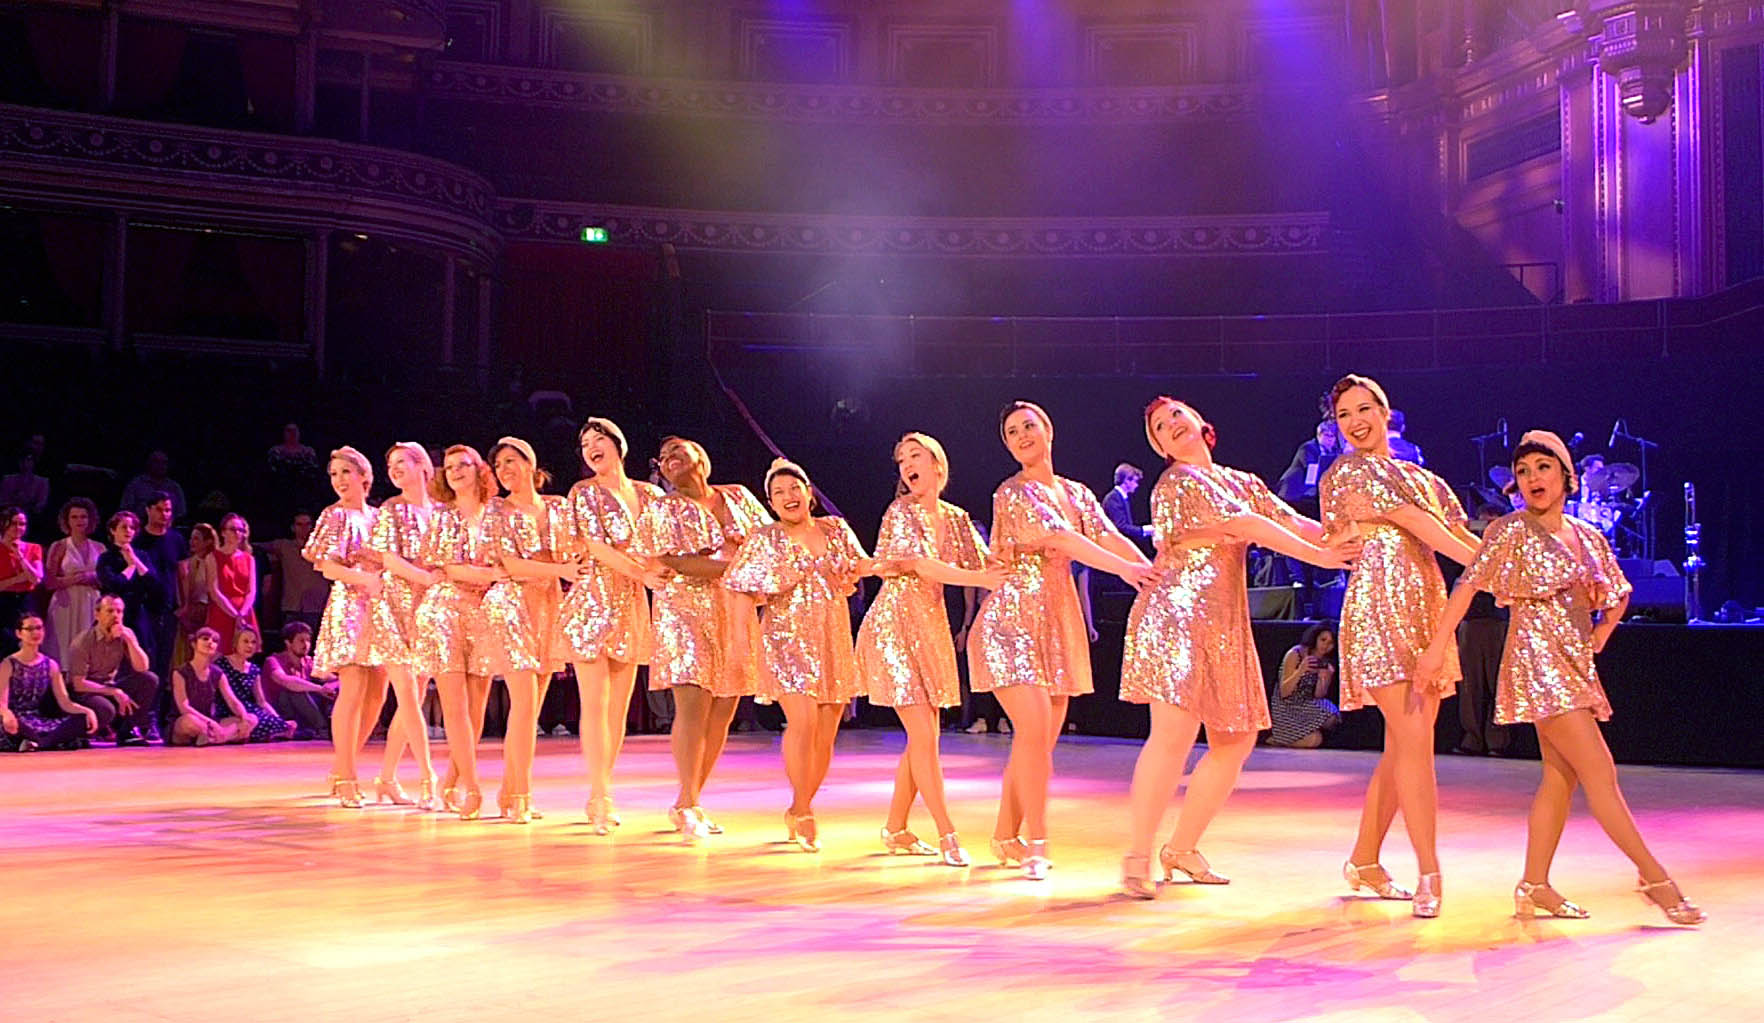 JazzMAD at Royal Albert Hall (photo by Dave Parsons)